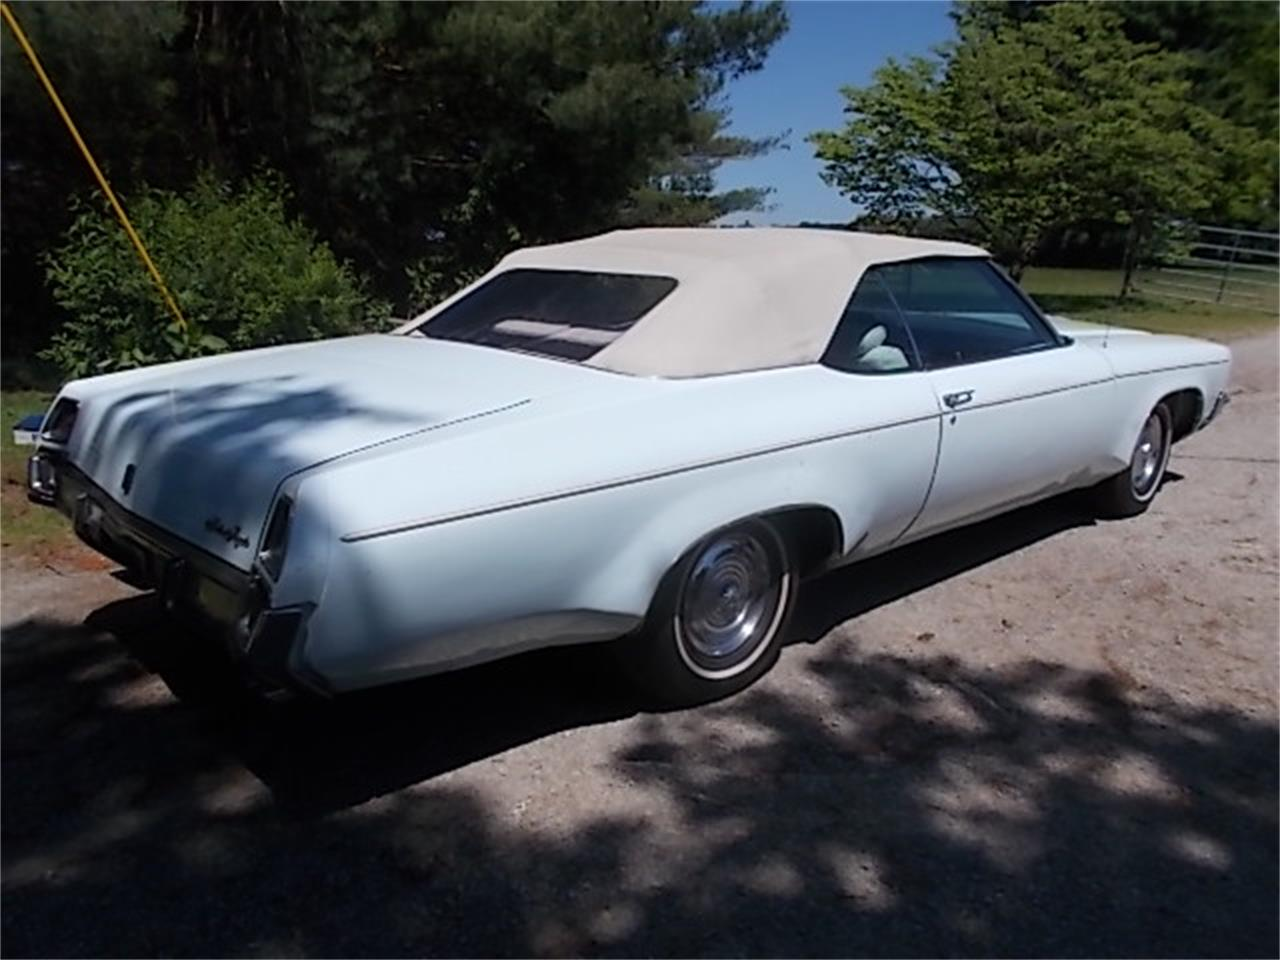 Large Picture of Classic 1972 Oldsmobile Delta 88 Royale located in Ohio - $5,500.00 - QB97